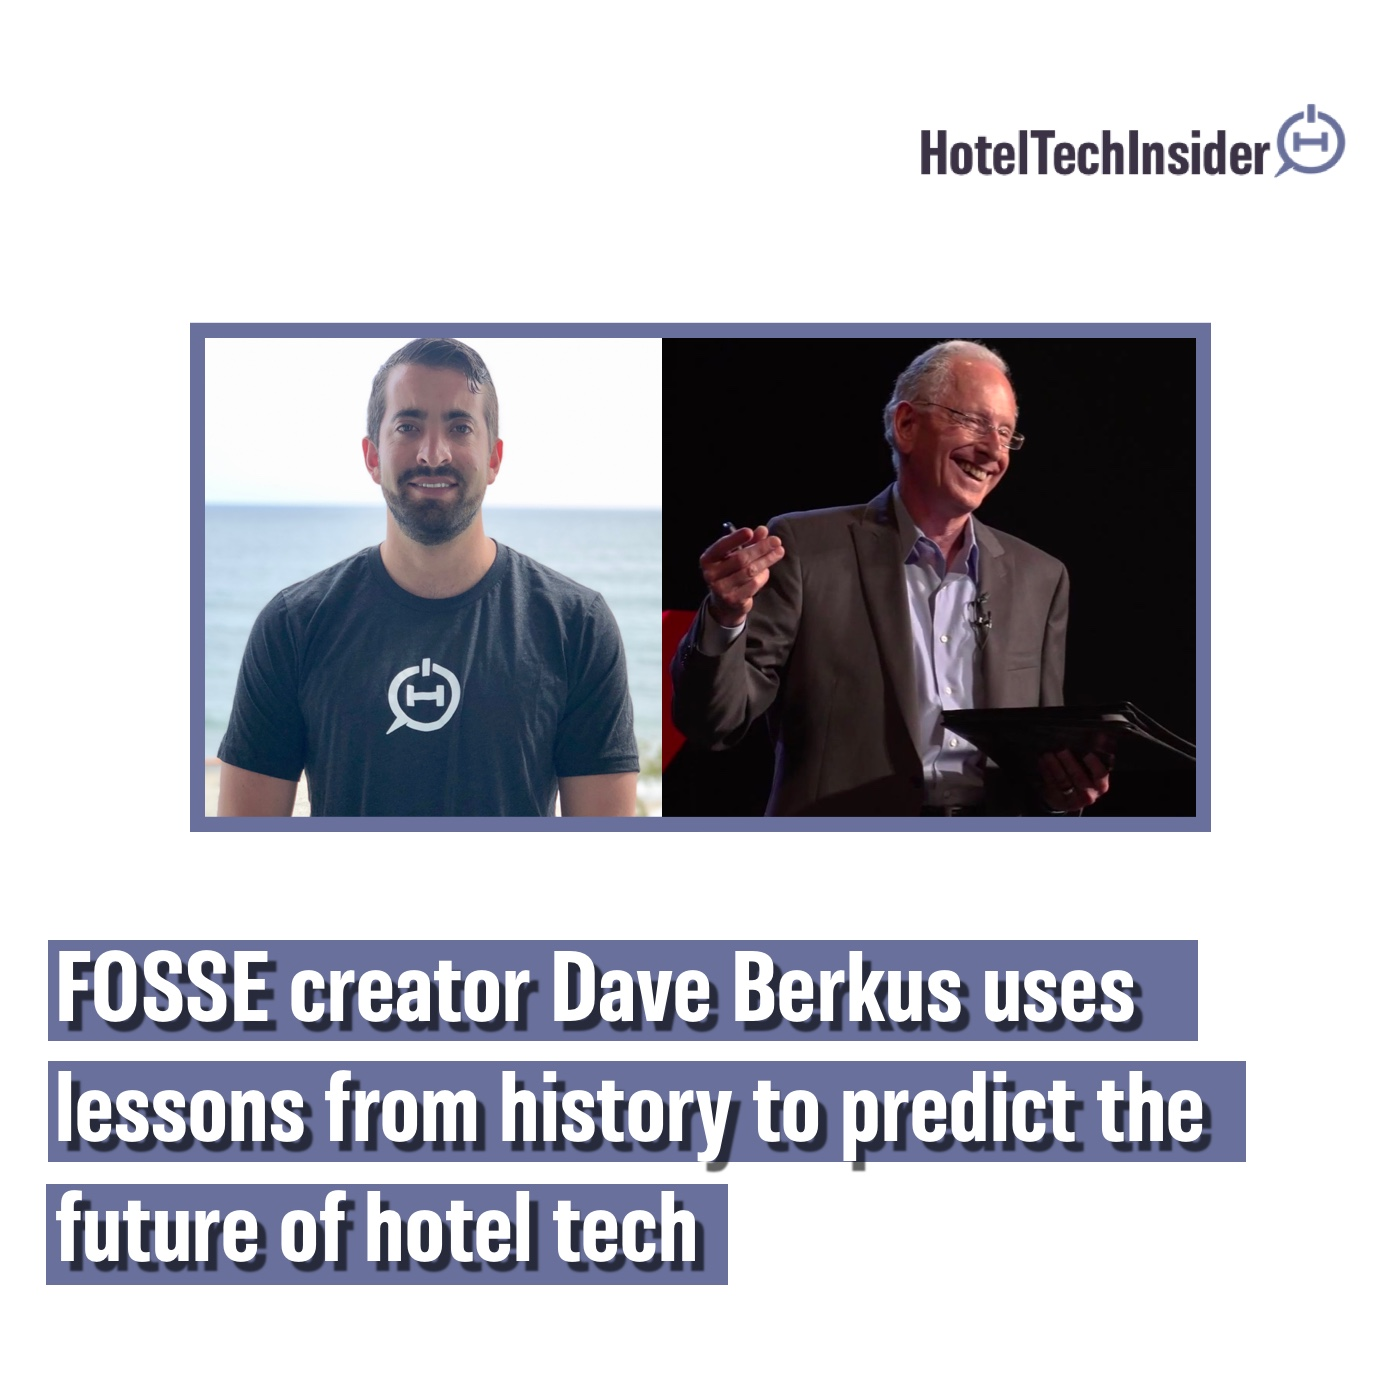 FOSSE creator Dave Berkus uses lessons from history to predict the future of hotel technology